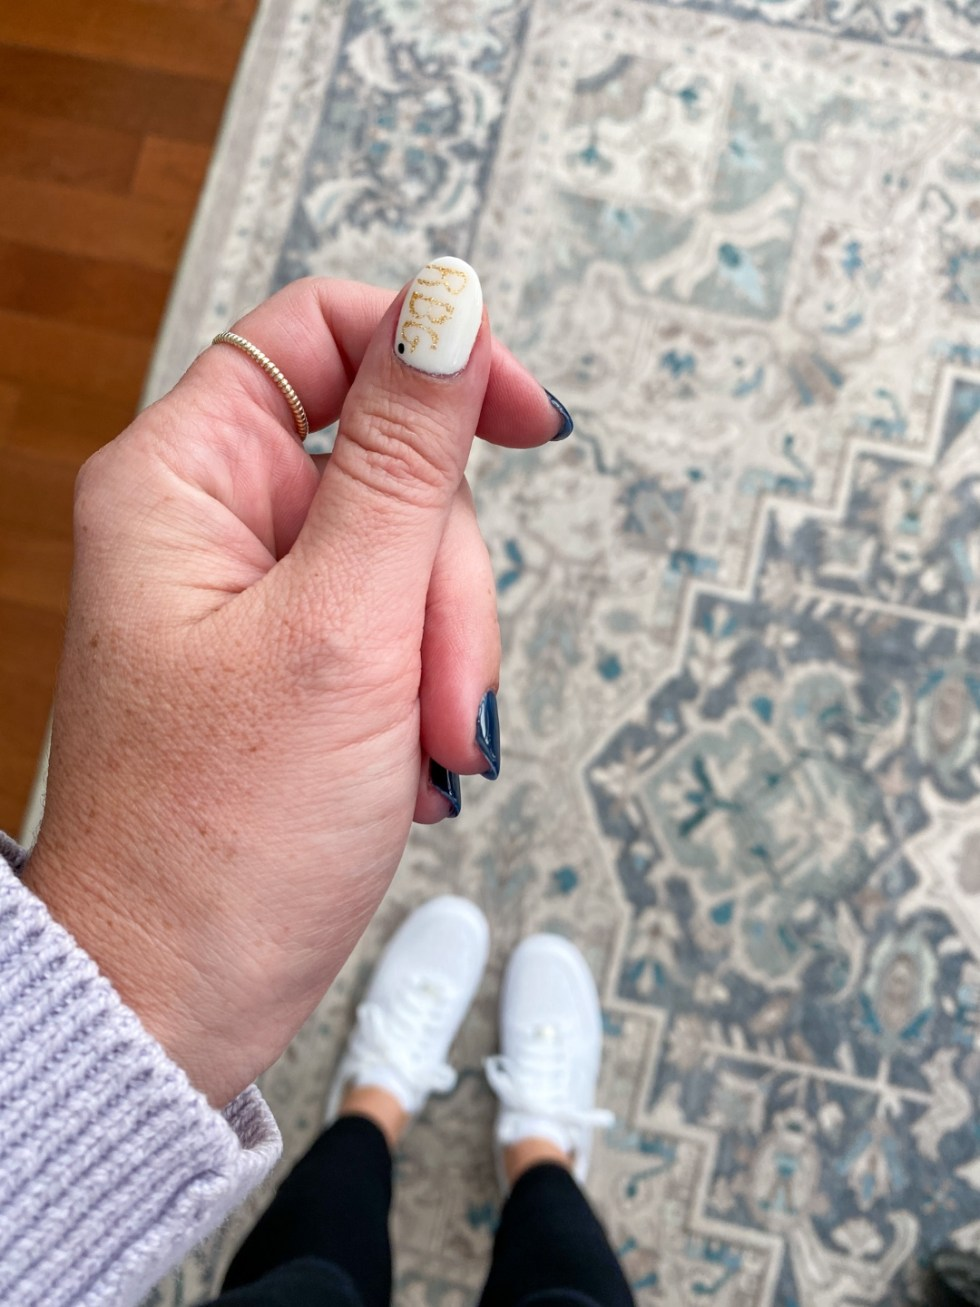 Civic Engagement Fashion Top Picks for Women - I'm Fixin' To - @mbg0112 | Civic Engagement by popular N.C. fashion blog, I'm Fixin' To: image of a woman with a RBG accent nail.